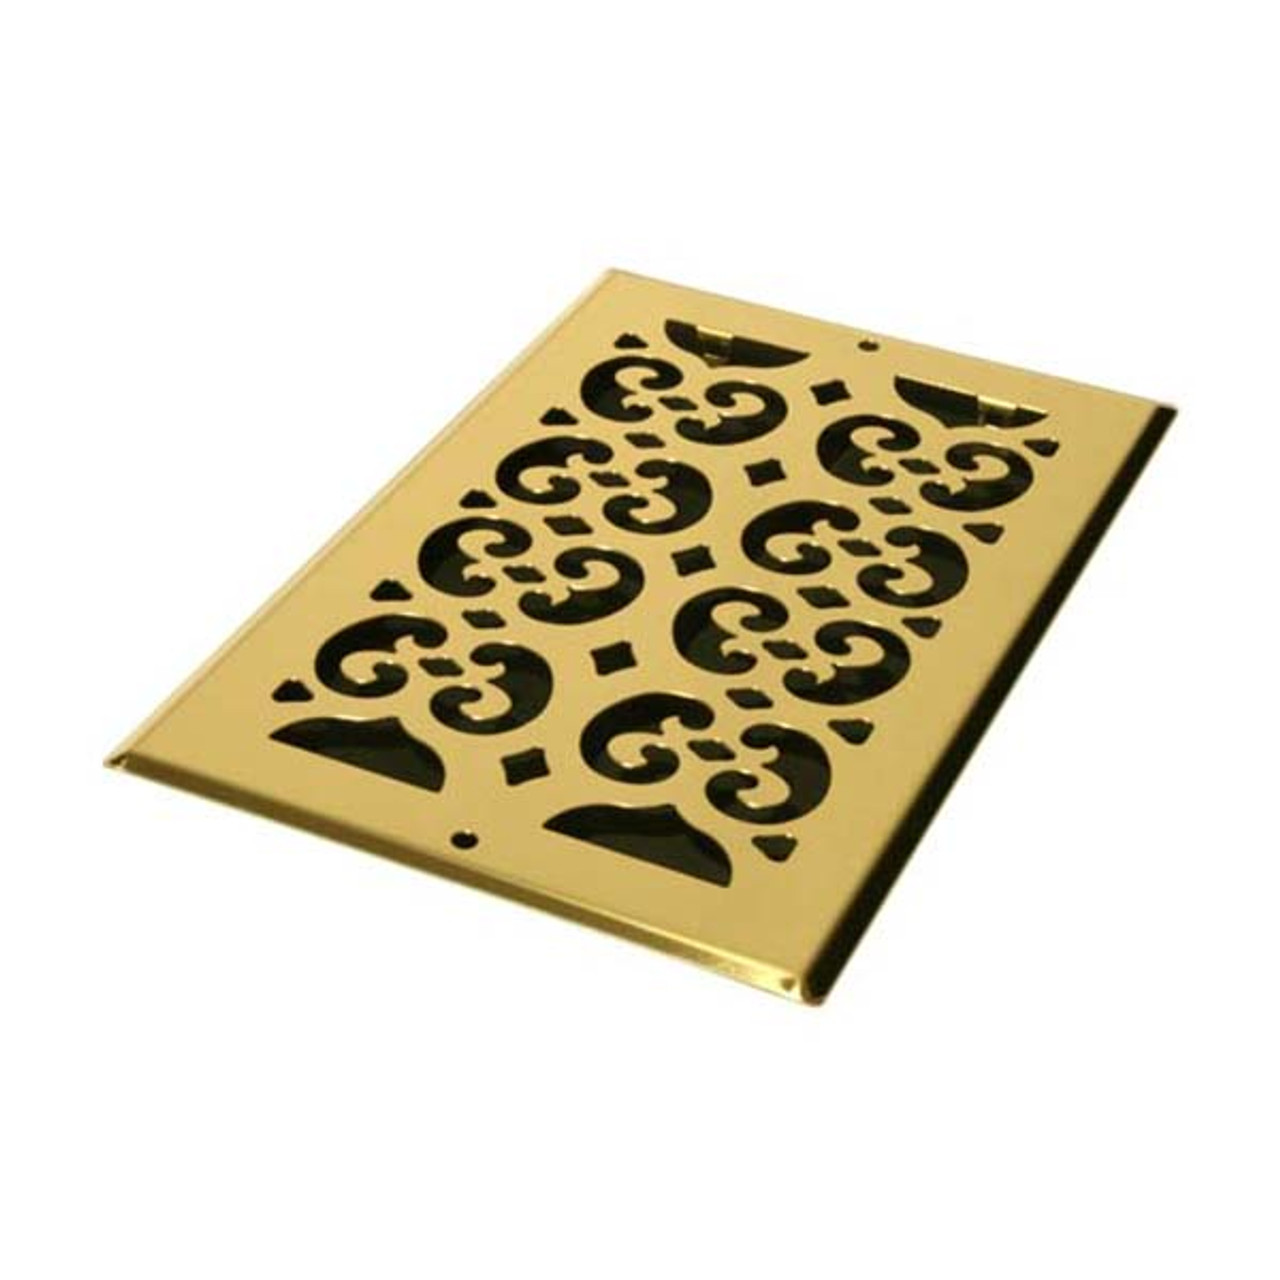 Cold Air Return Vent Cover By Shop Decorative Floor Vent Covers And Home Hardware